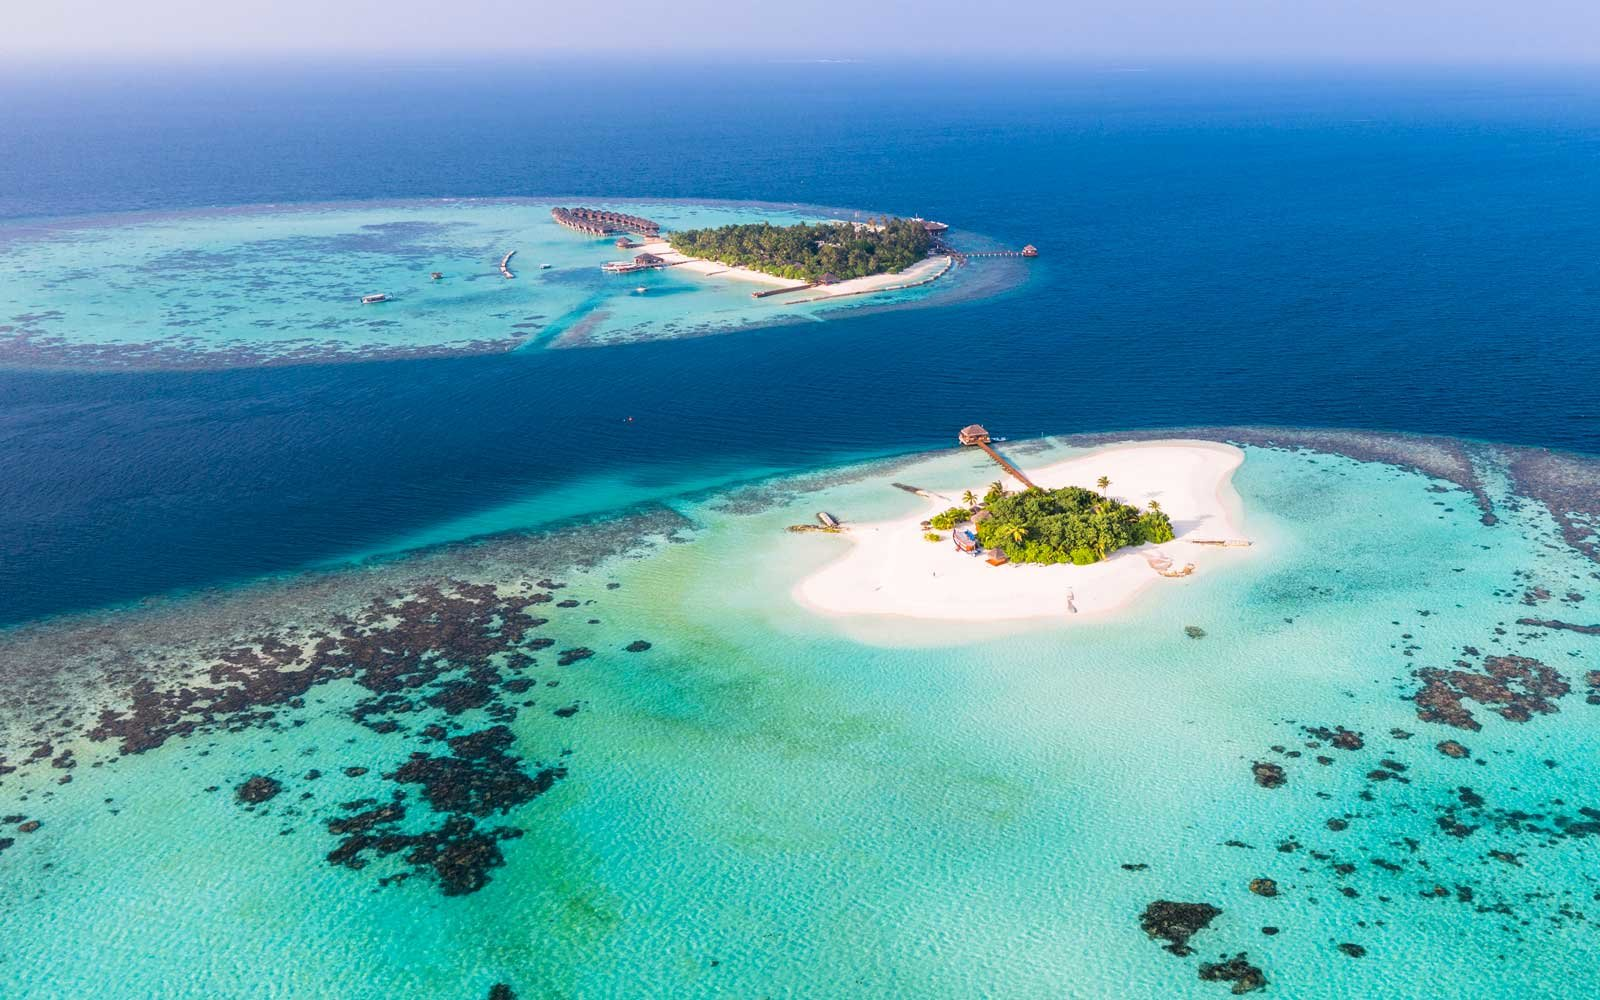 Use Accessories To Link Your Island To The Rest Of Your: How To Take Your Dream Trip To The Maldives On A Budget